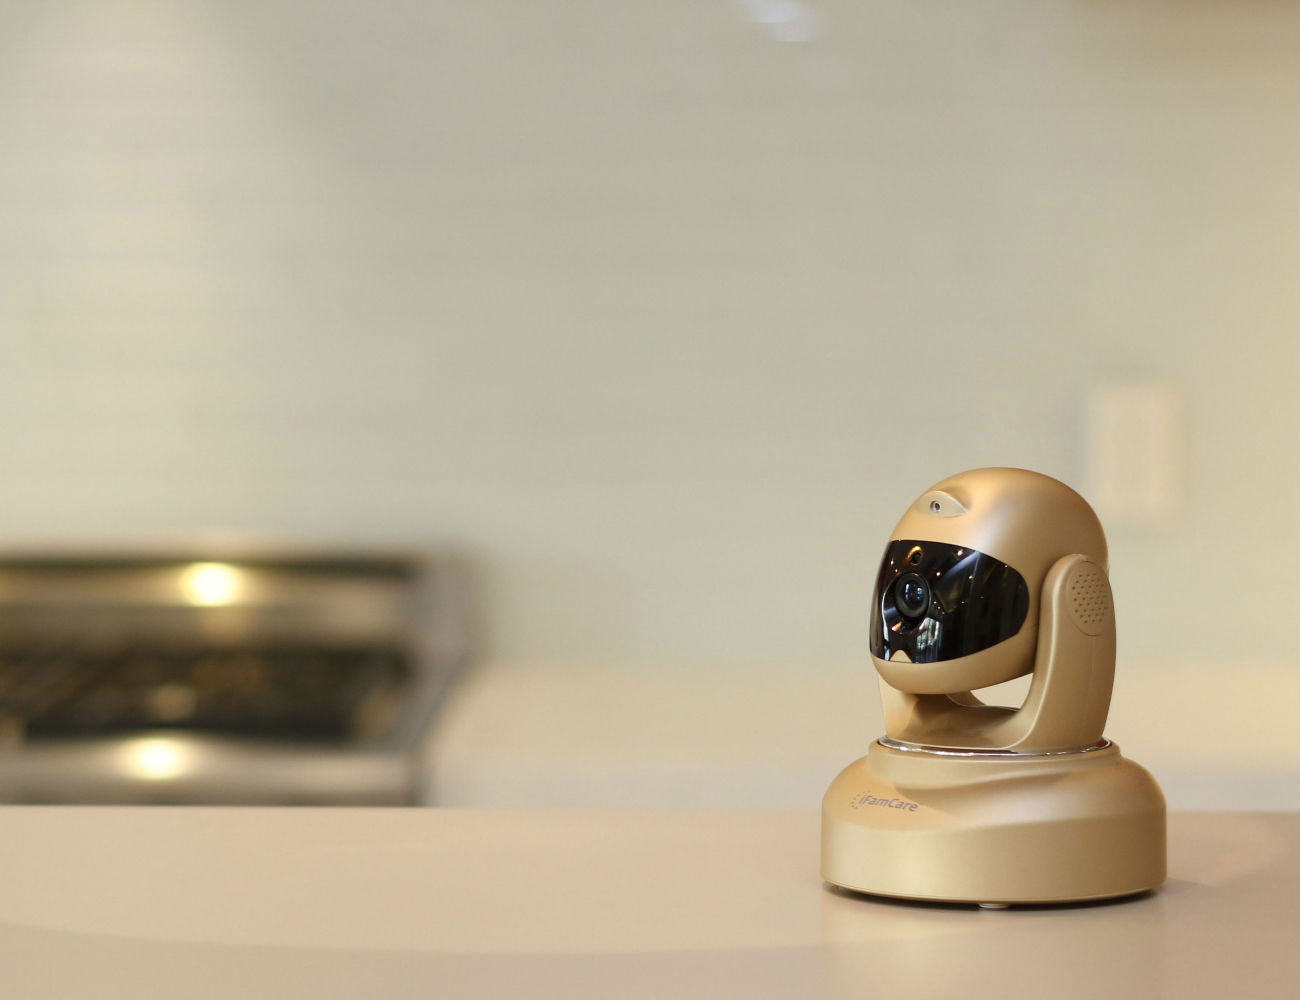 Helmet – The Smart Home Video Monitor by iFamCare